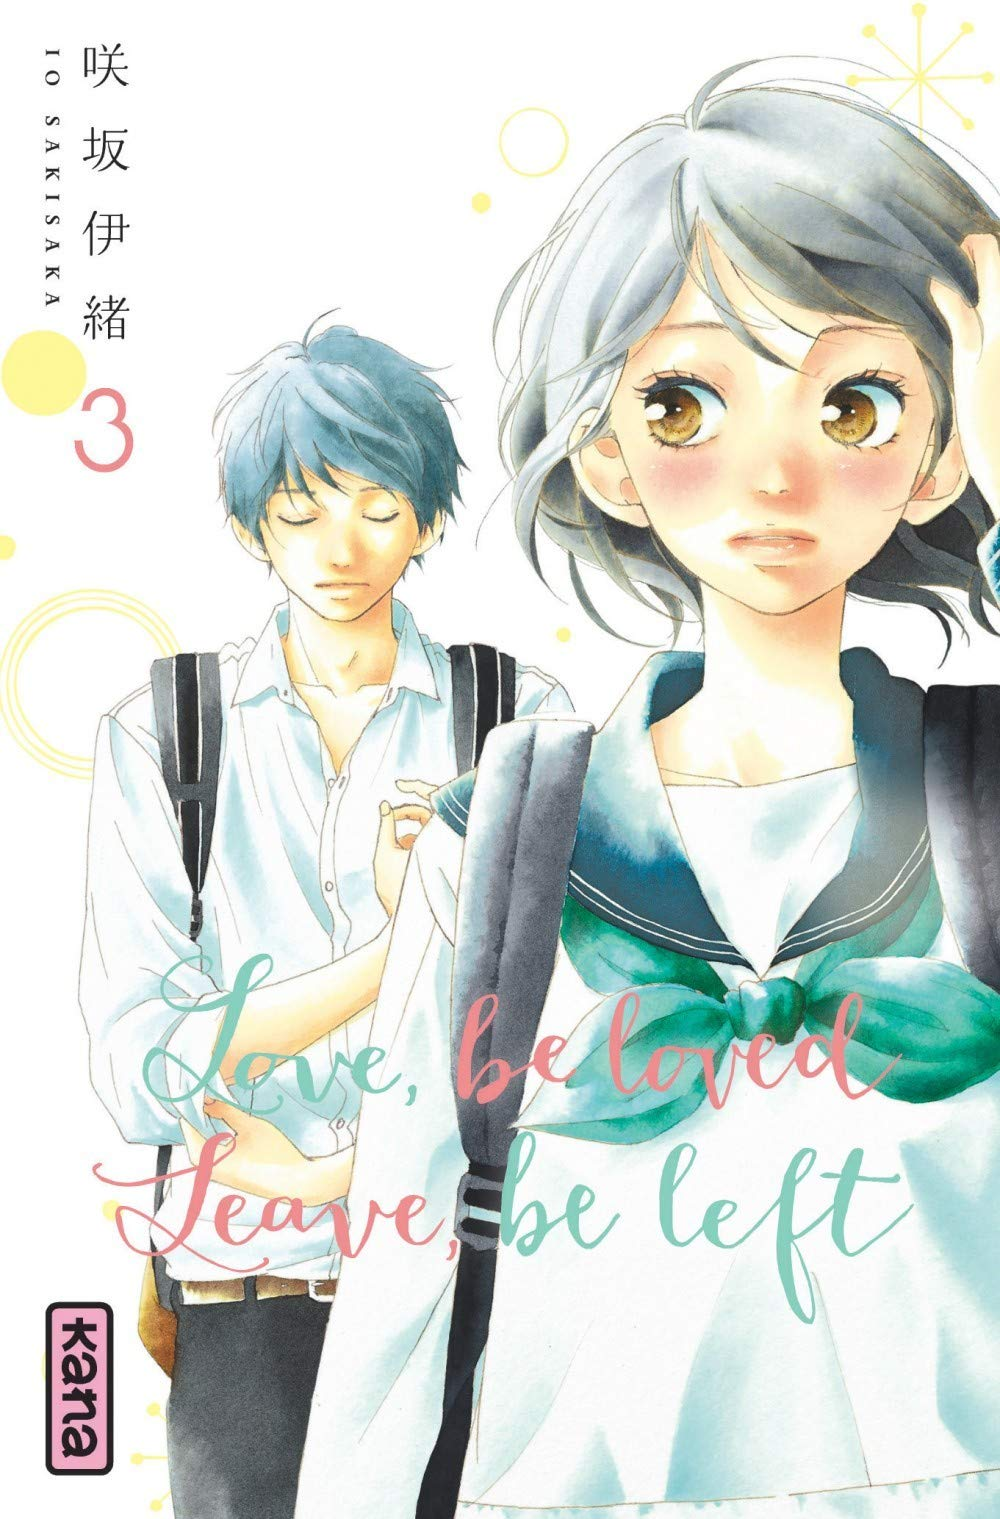 Love, be loved Leave, be left - Tome 3